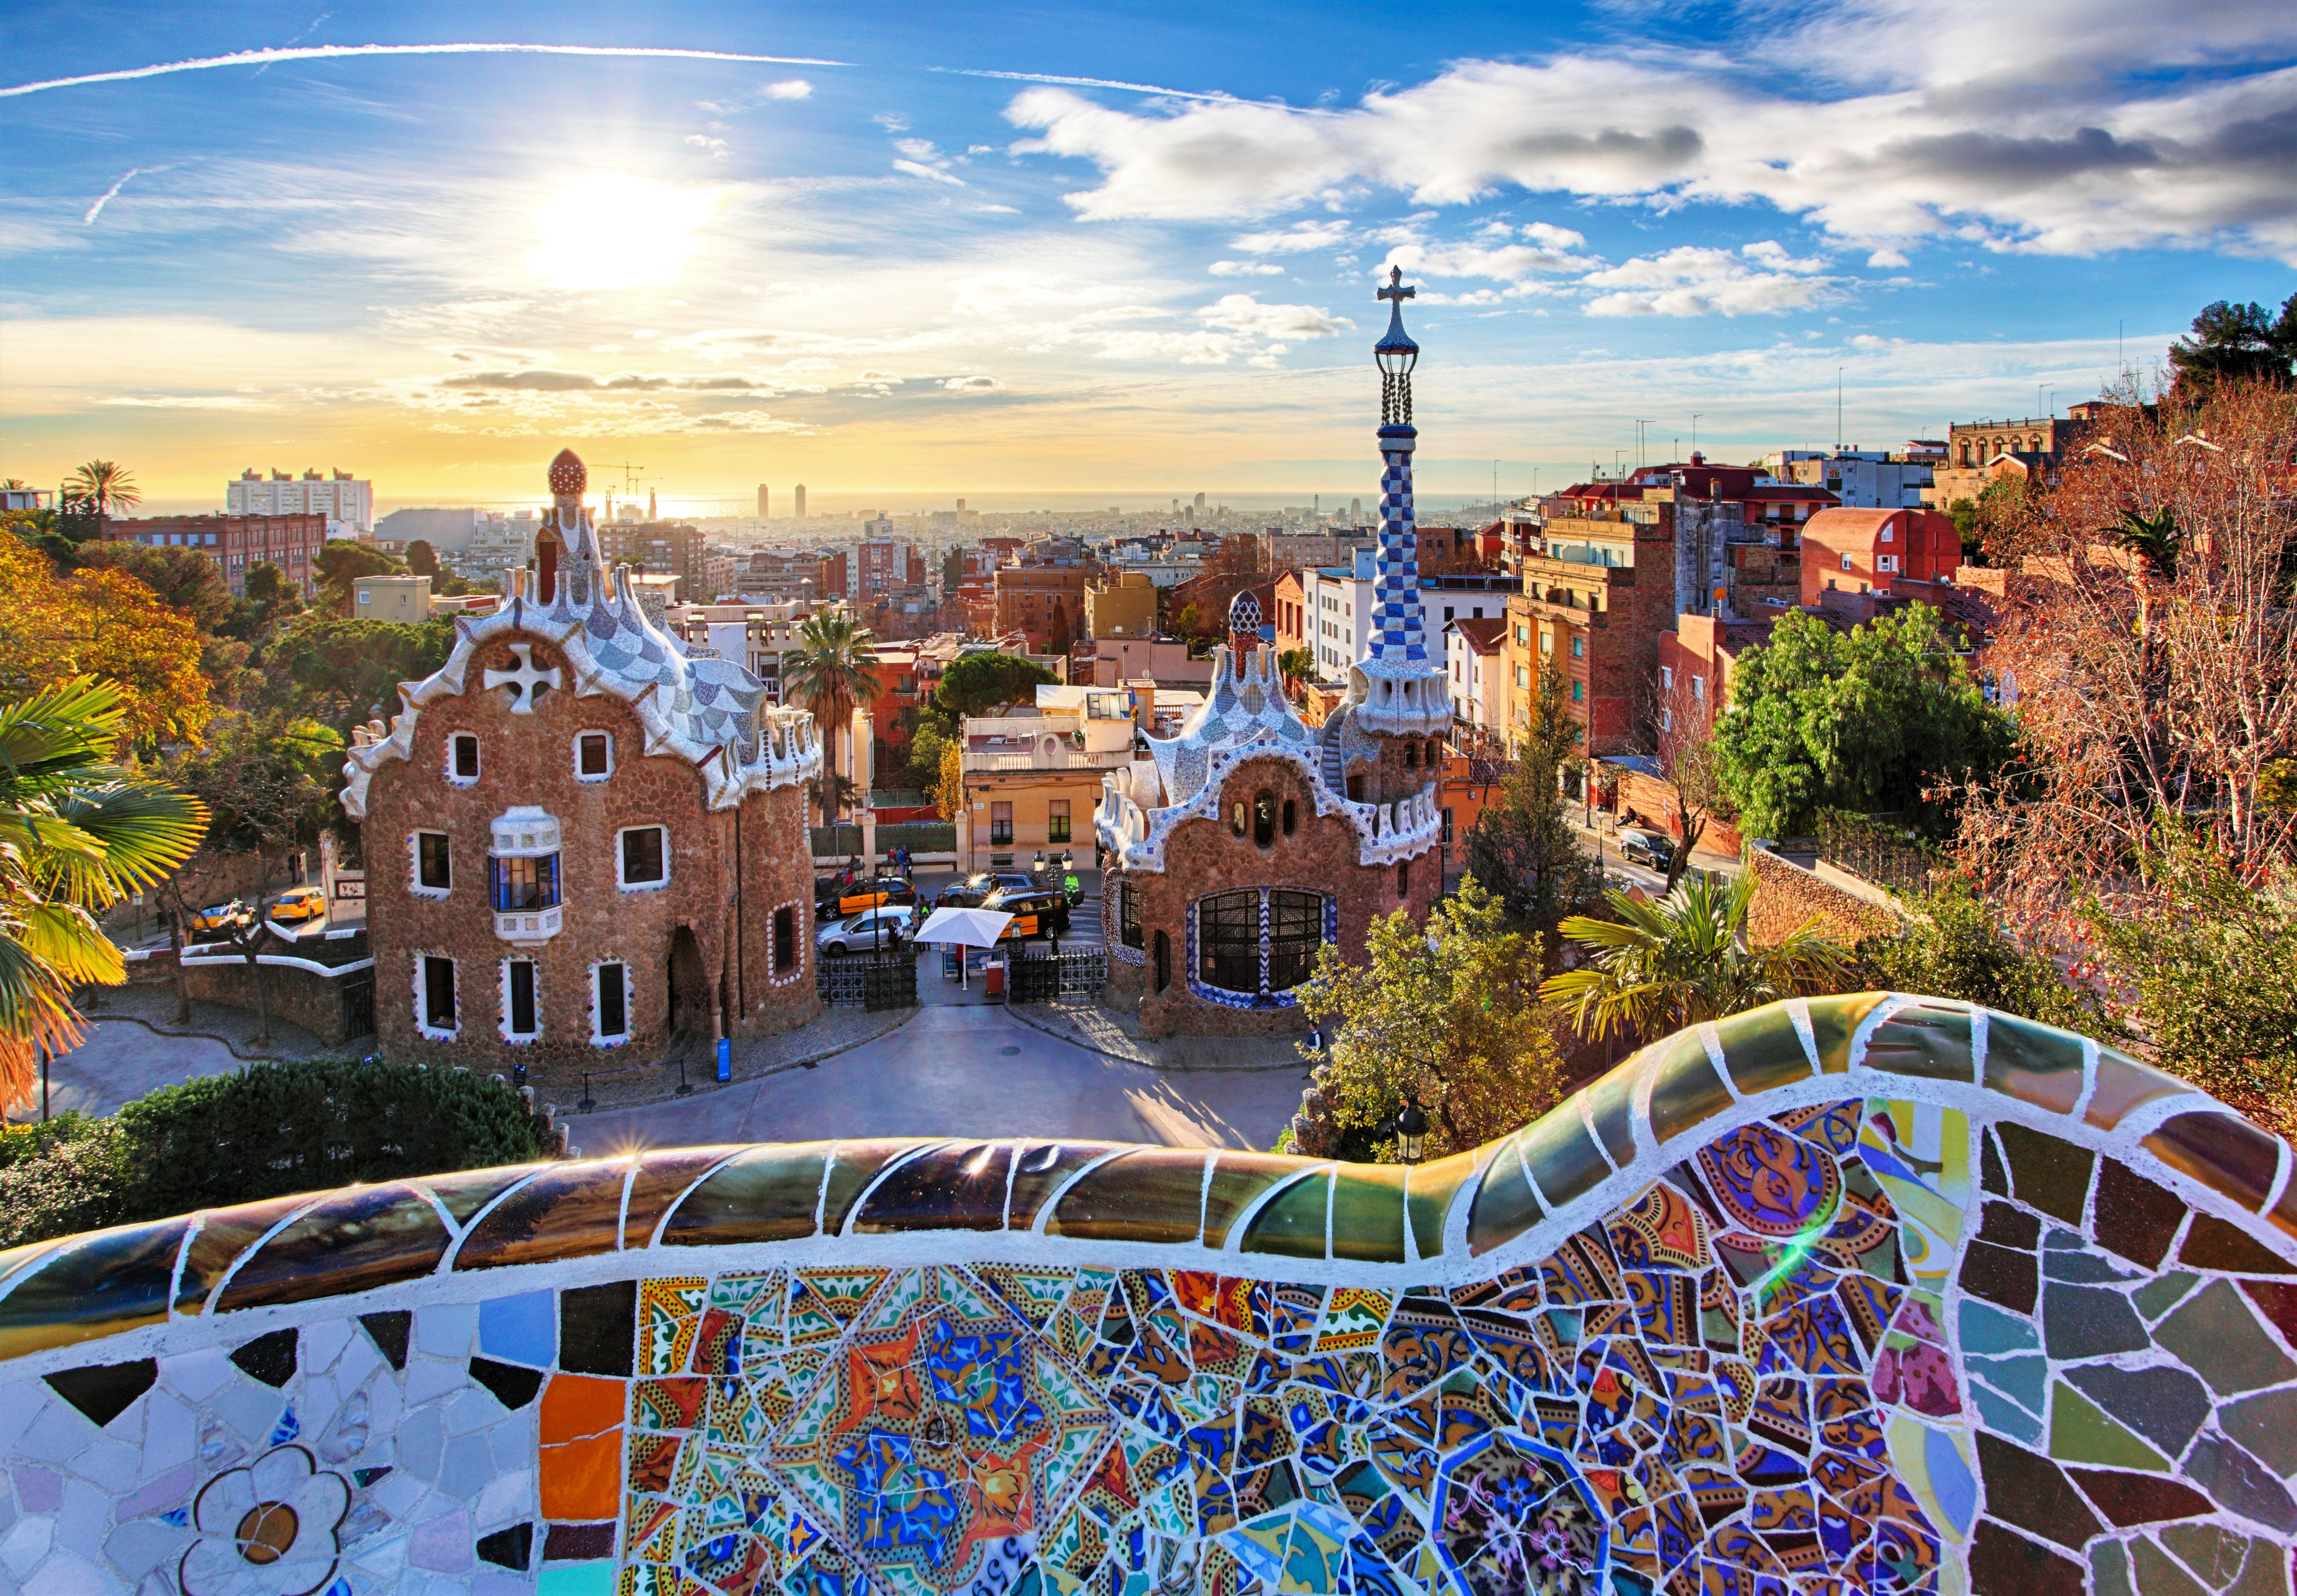 Barcelona Spain 4k Ultra HD Wallpaper And Background Image